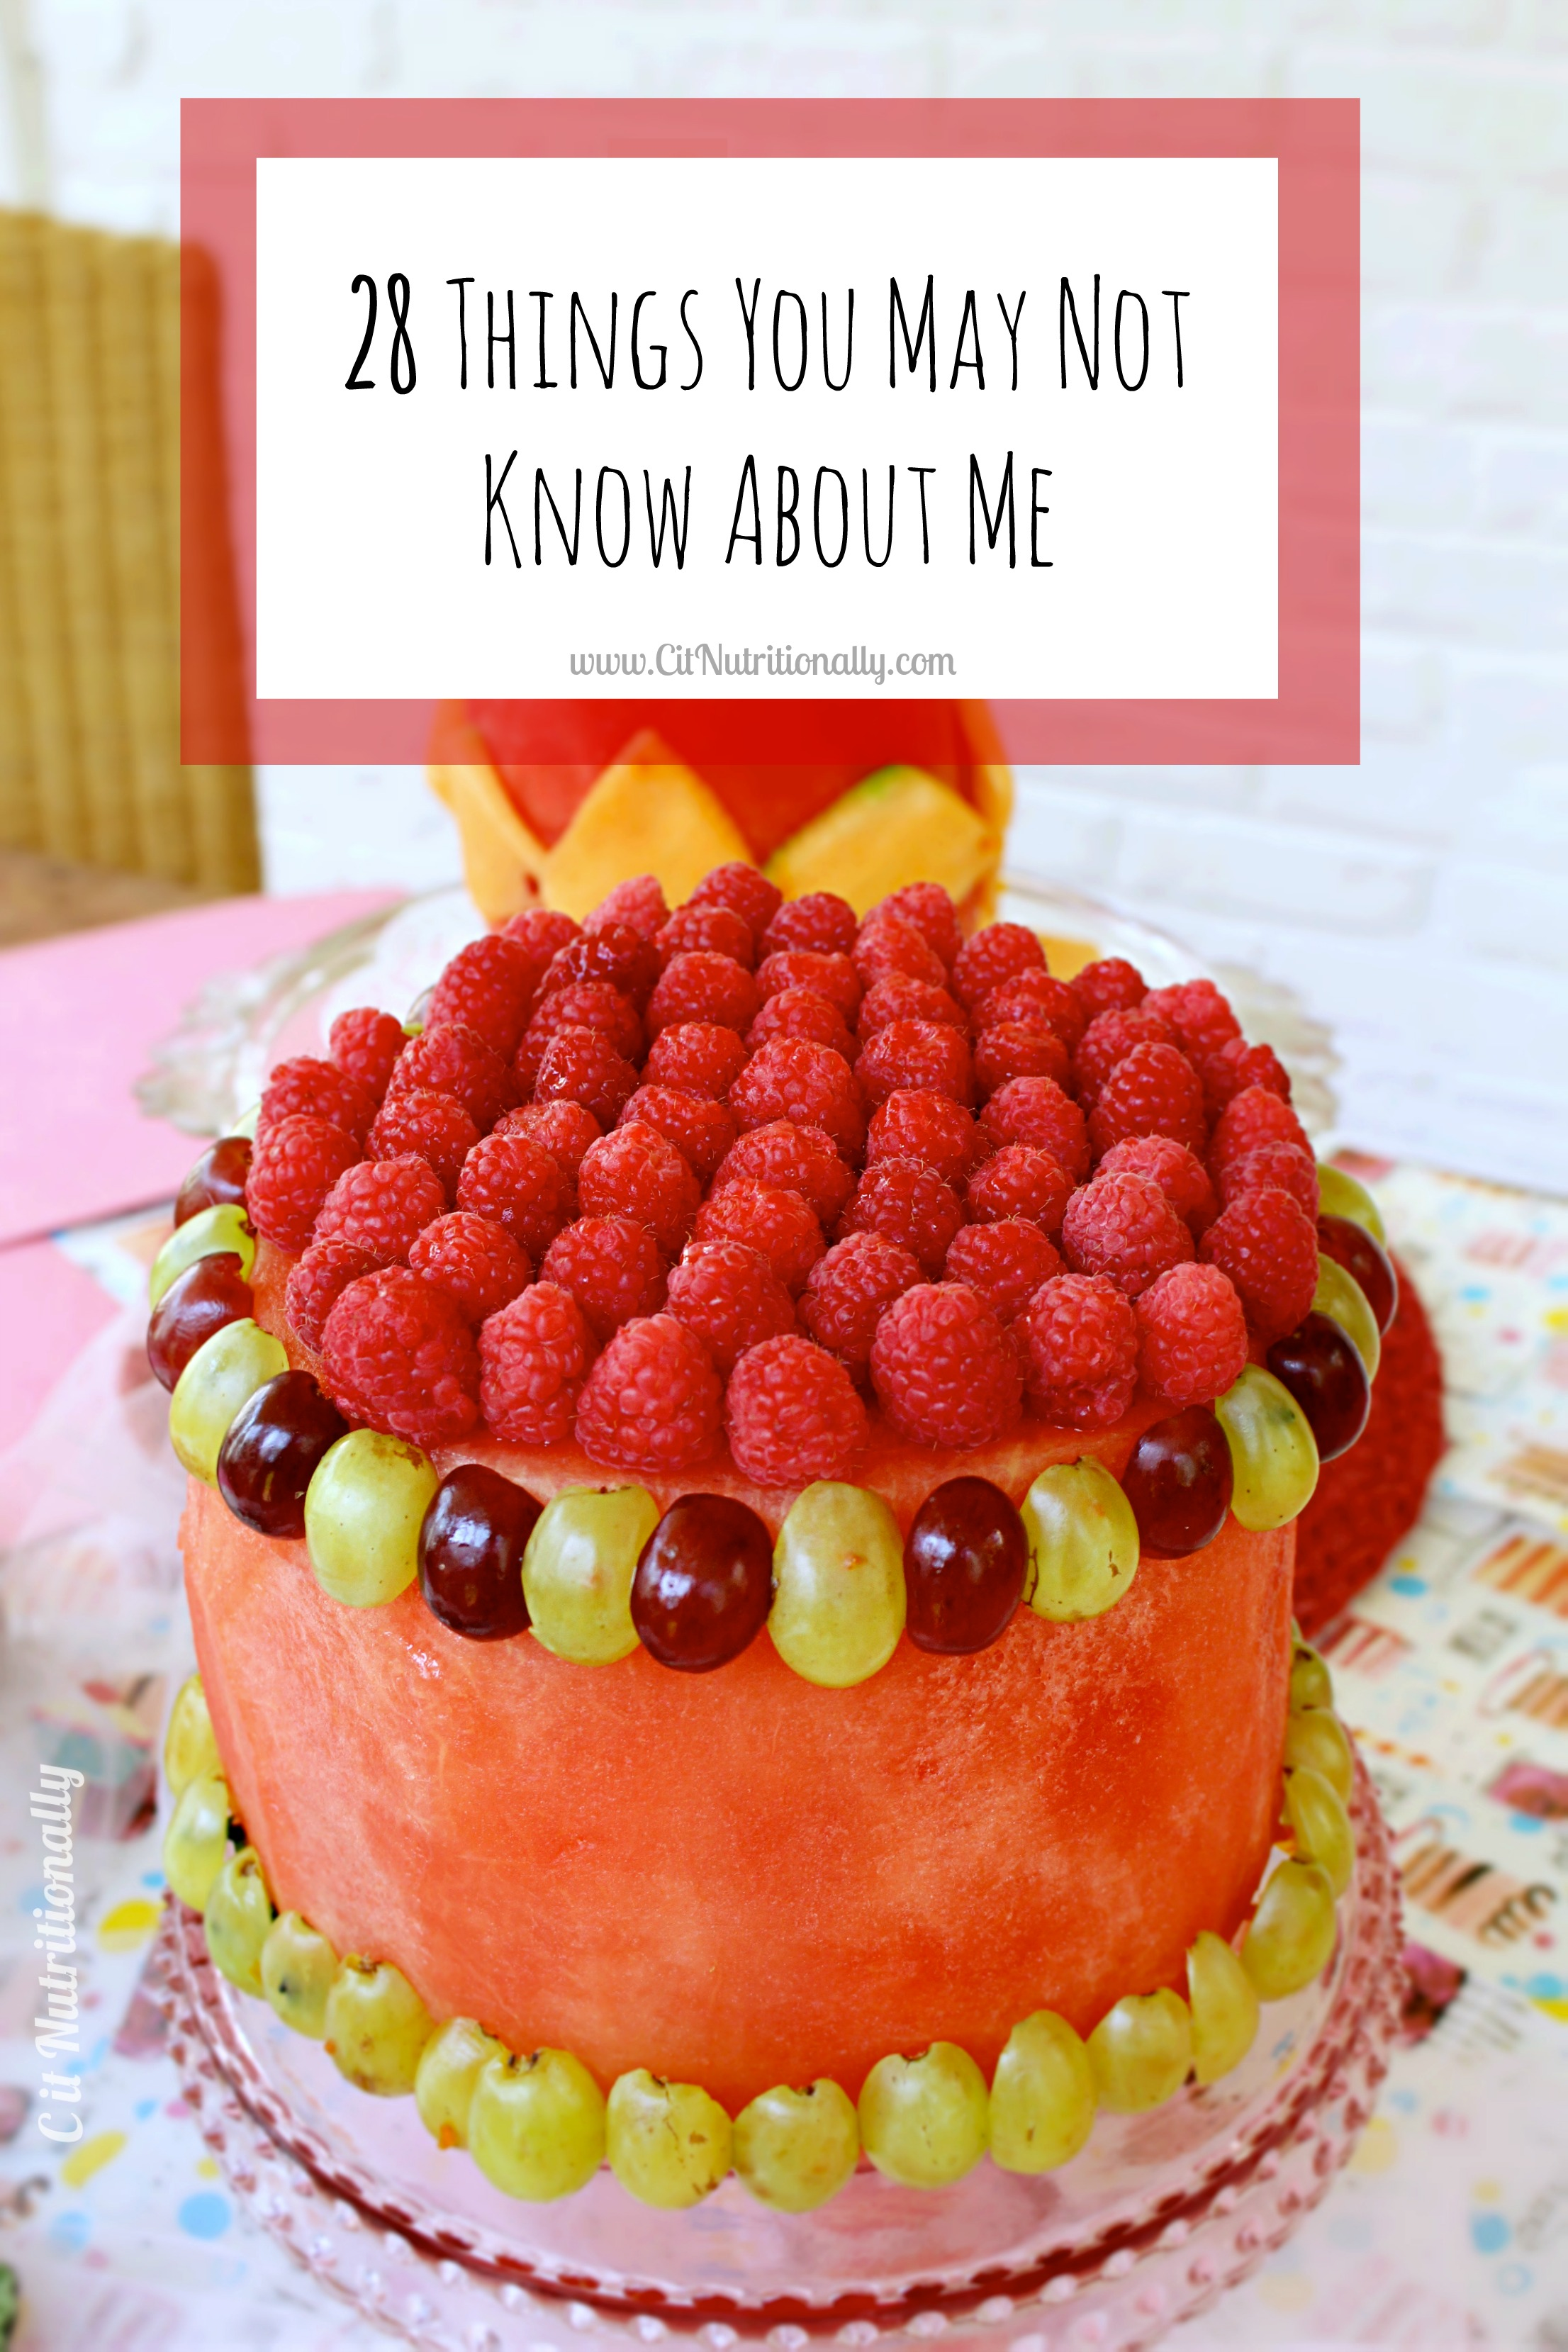 28 Things You May Not Know About Me On My 28th Birthday! | C it Nutritionally